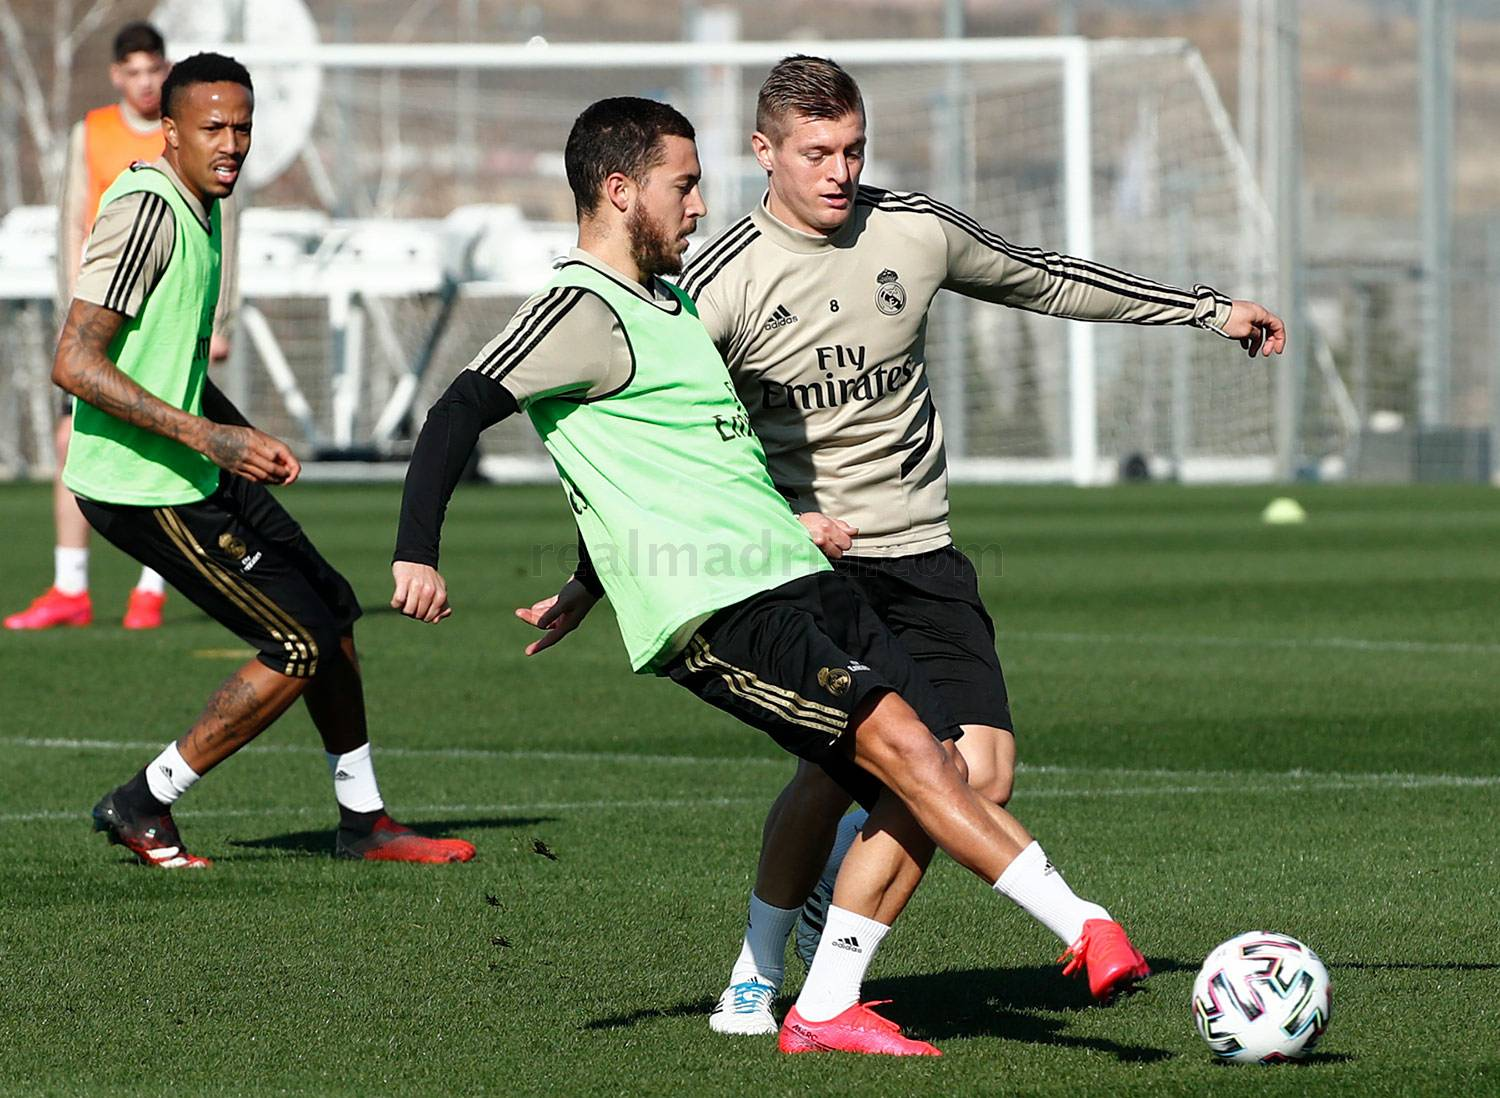 Real Madrid - Entrenamiento del Real Madrid  - 04-02-2020